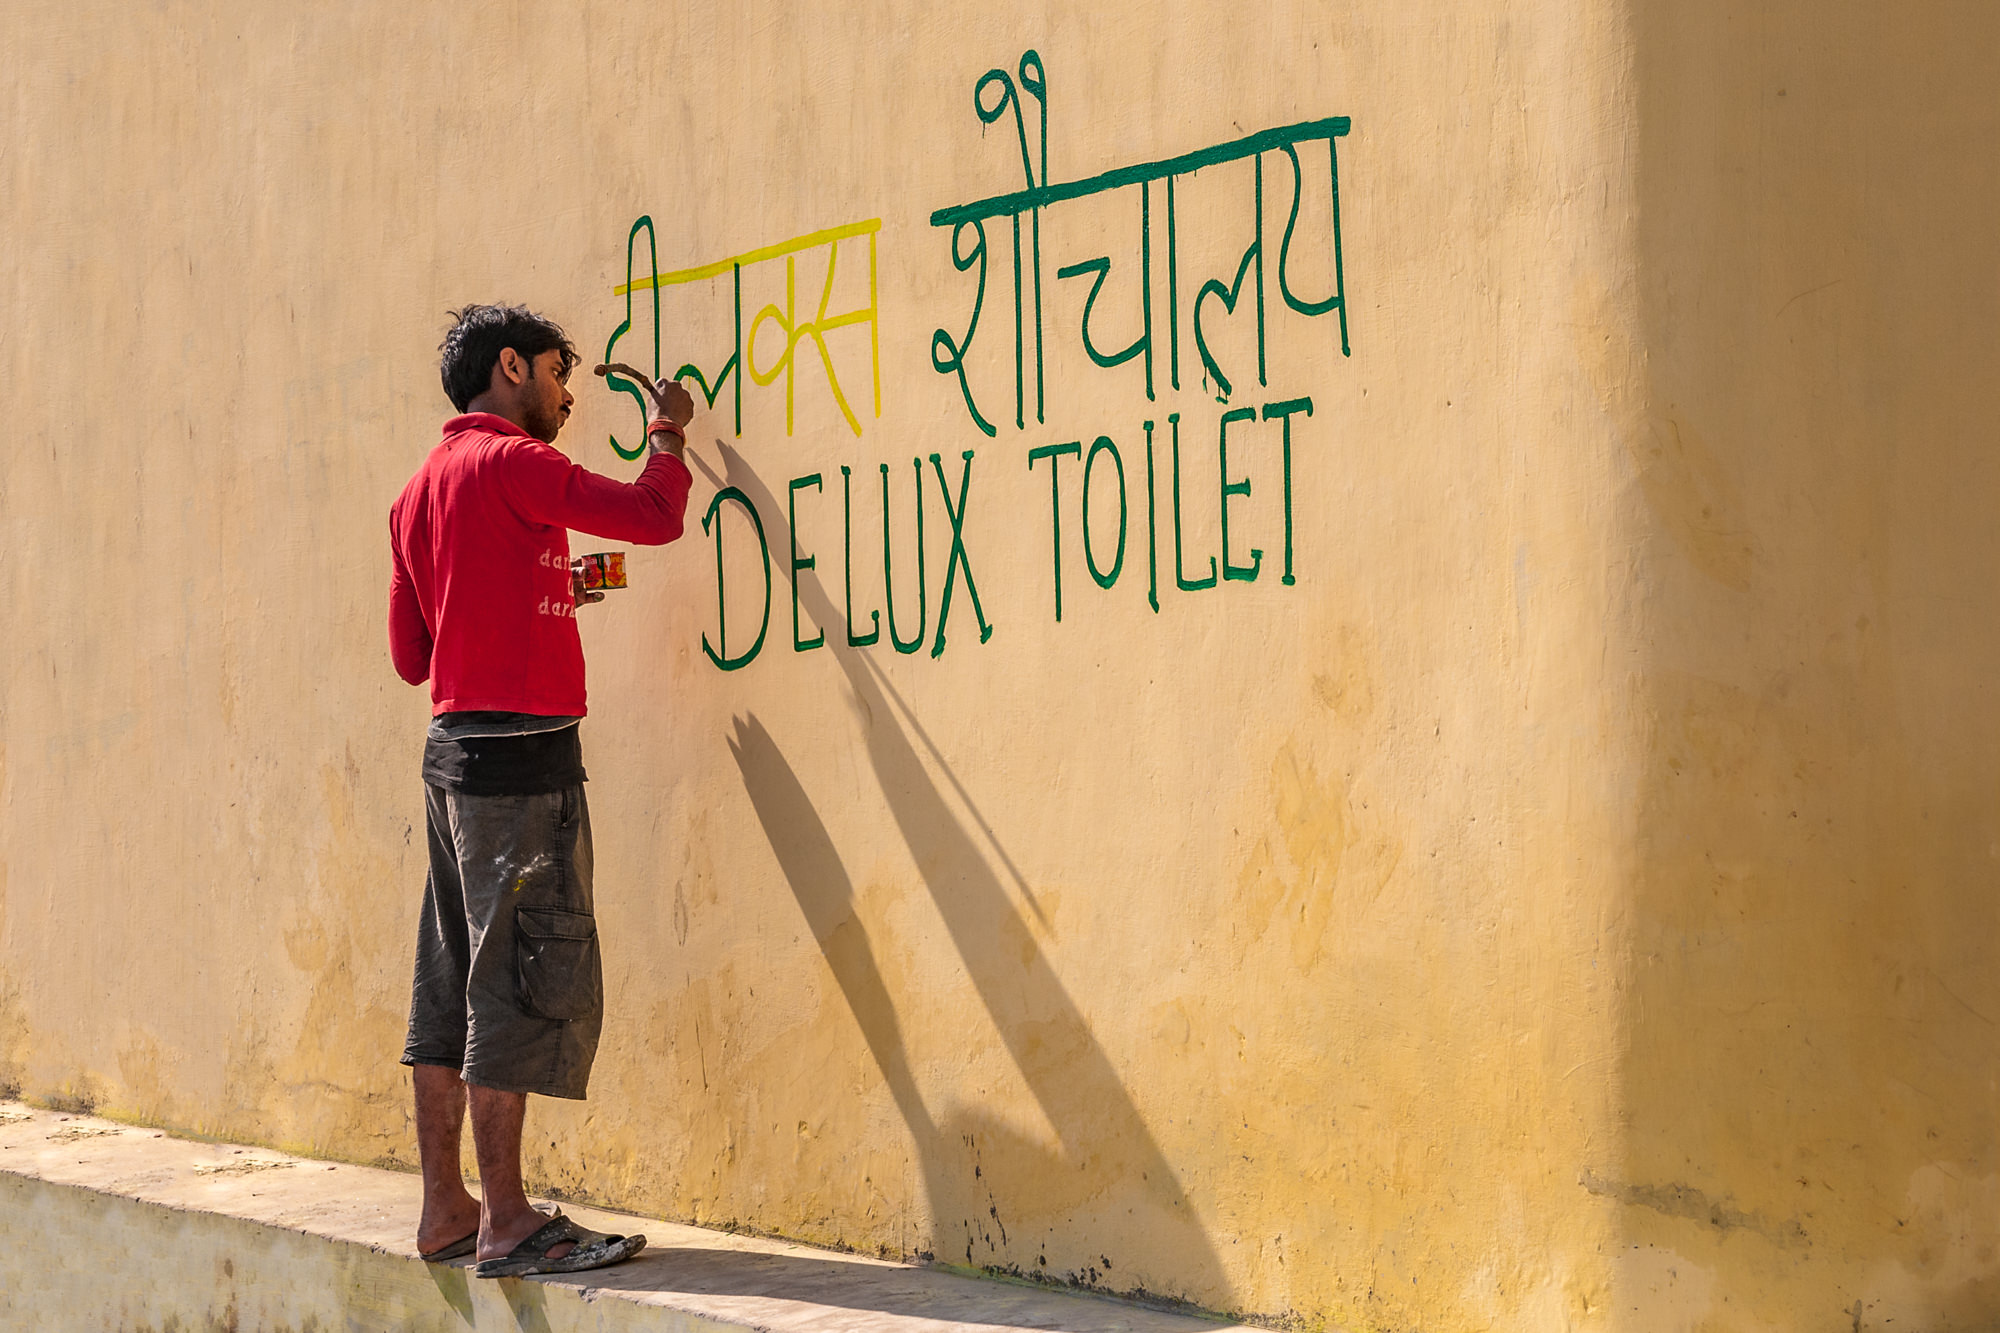 Permalink zu:World Toilet Day